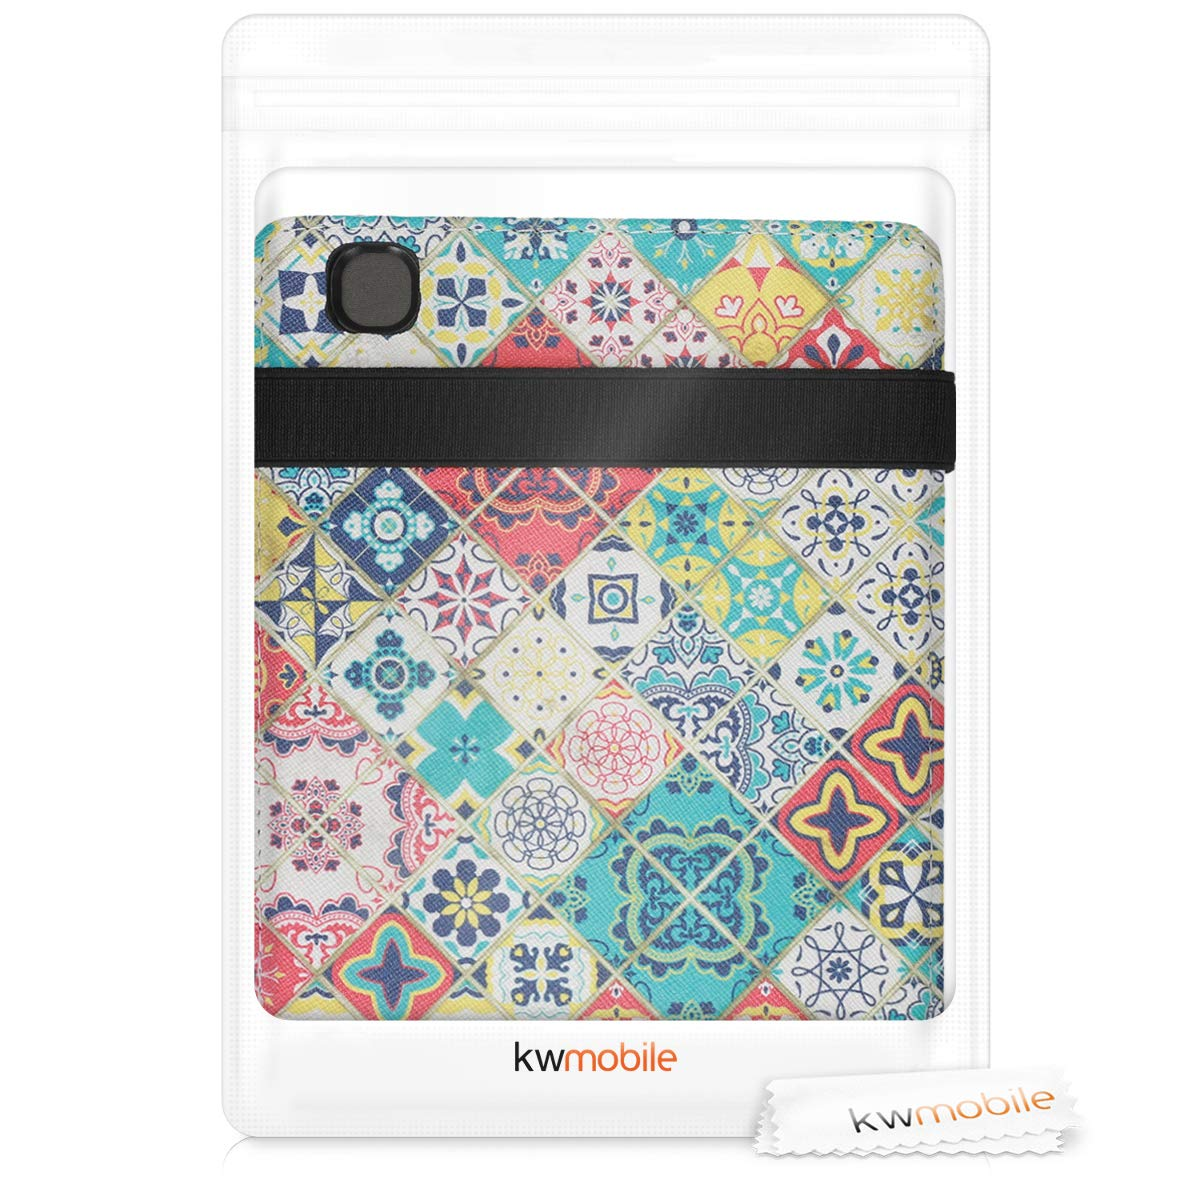 kwmobile Cover for Kobo Aura H2O Edition 2 PU Leather e-Reader ...